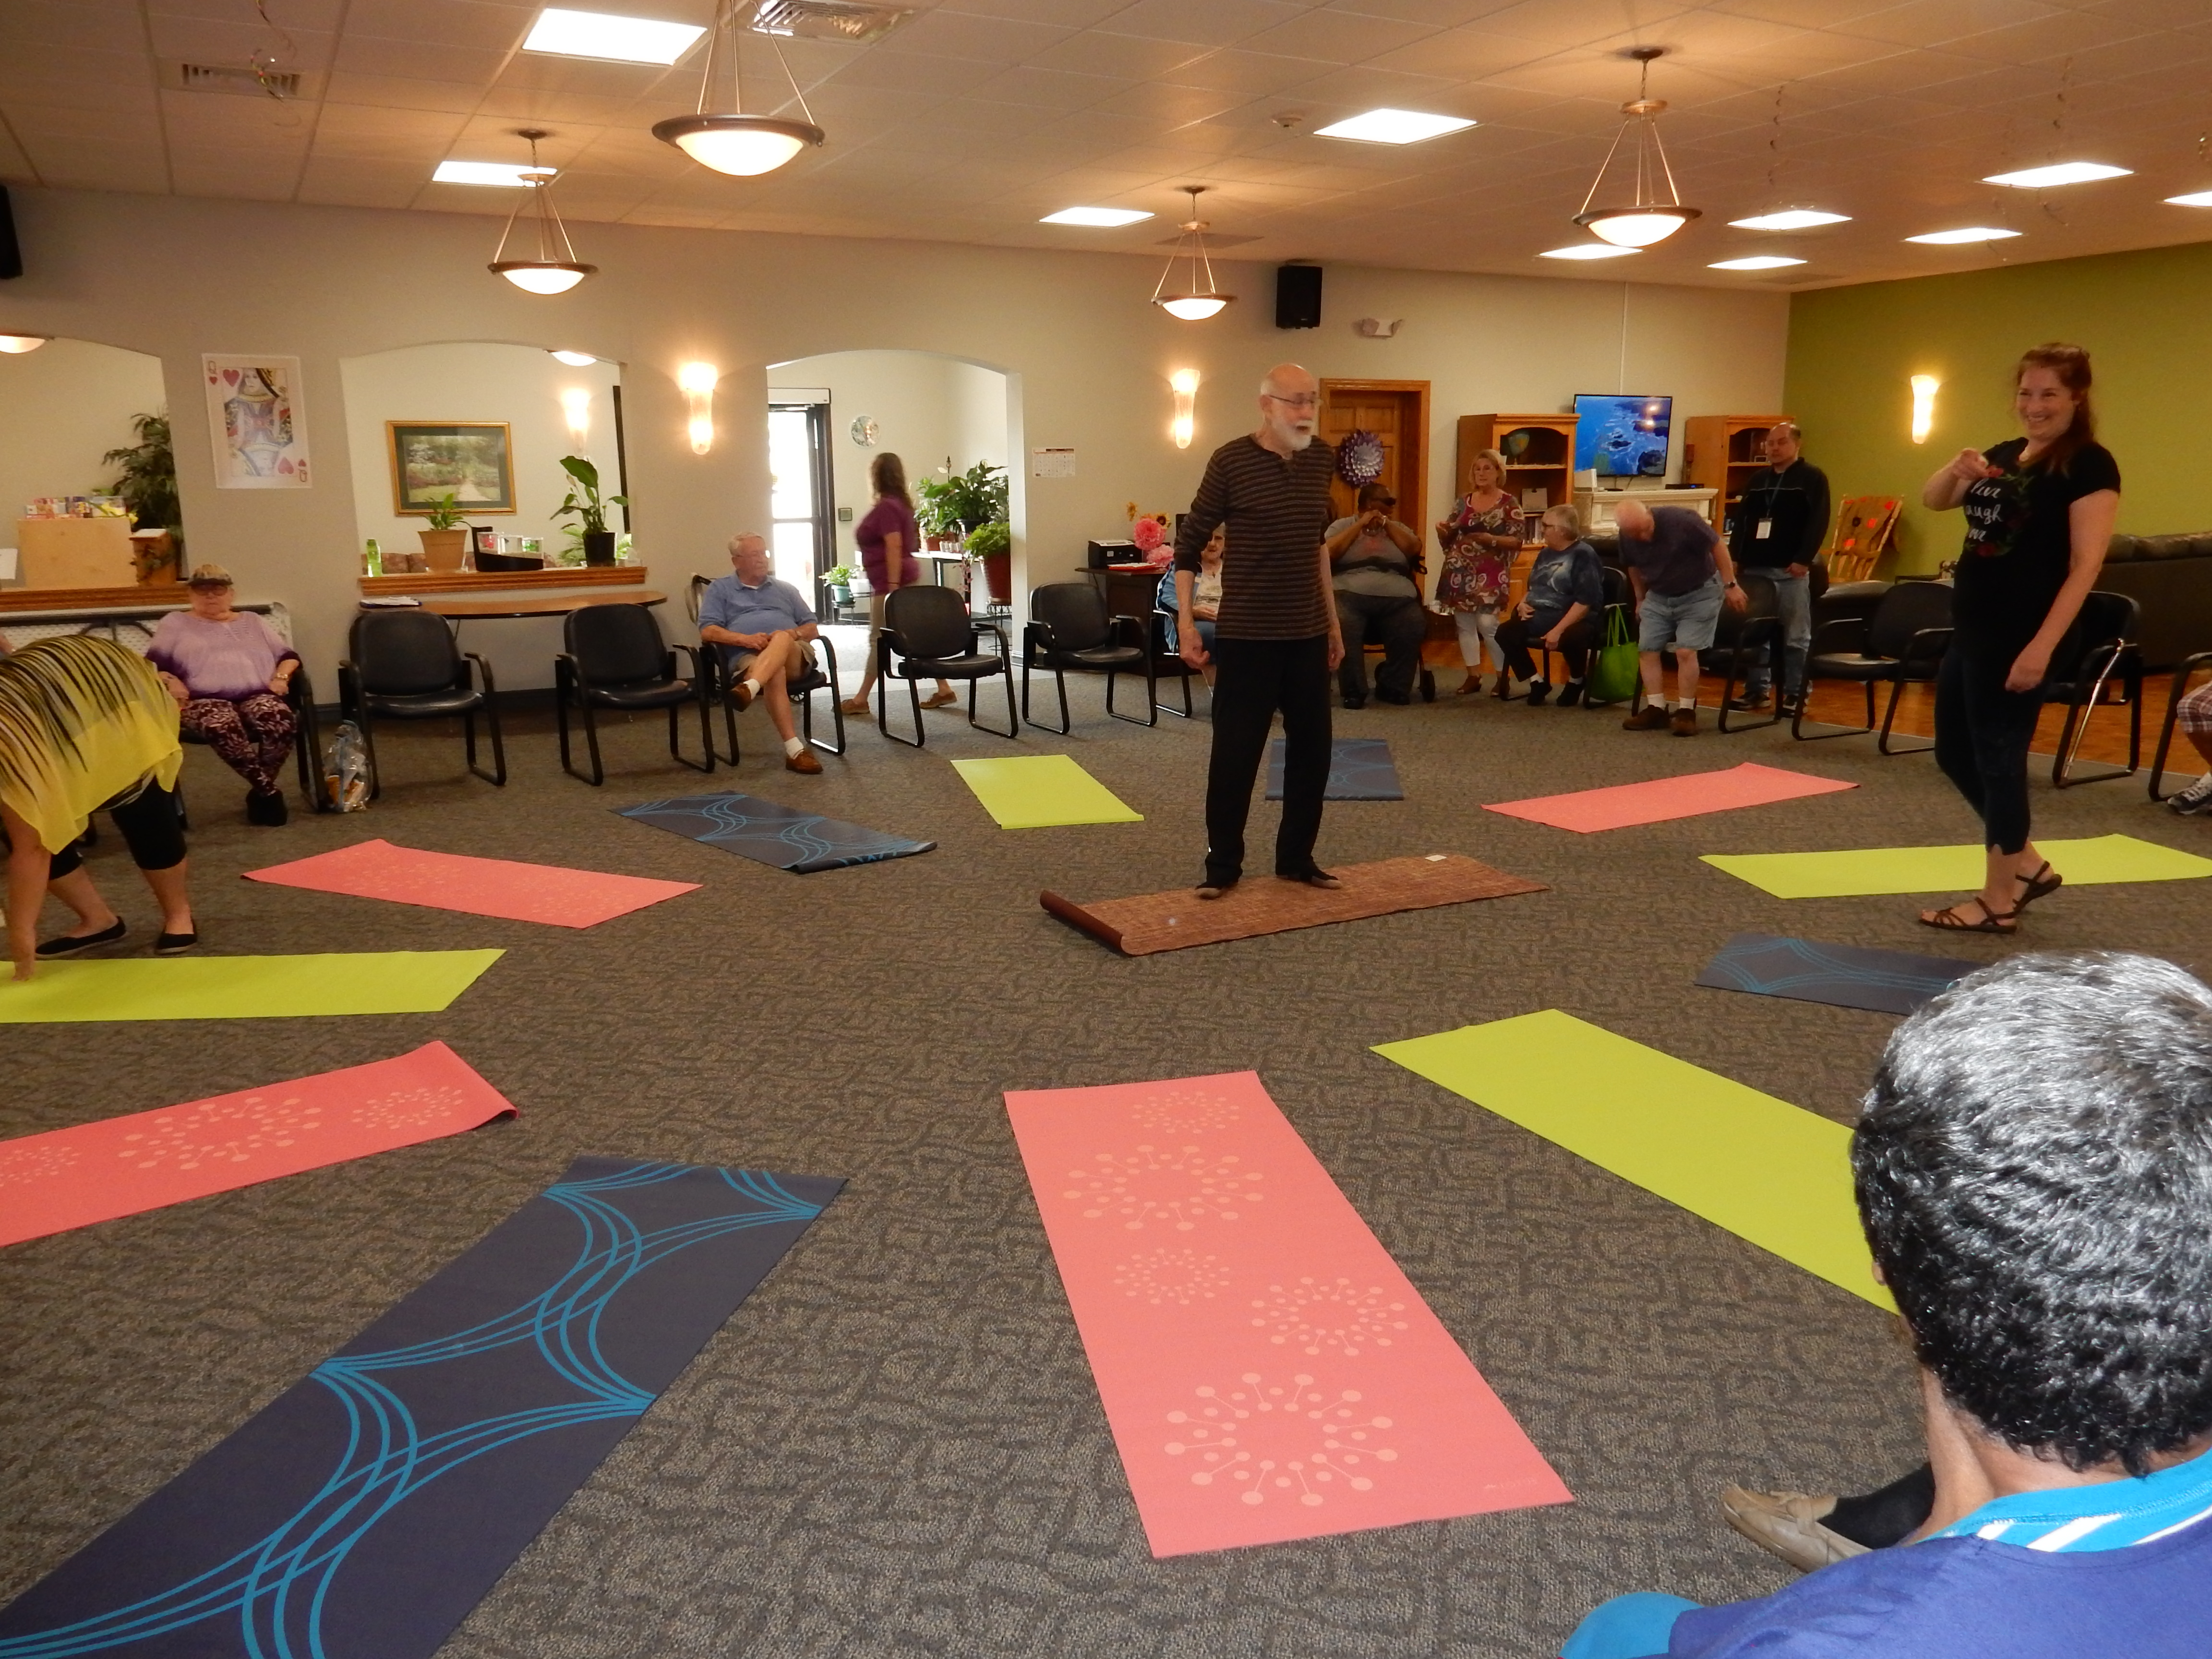 Thank you to Rhonda Kuster and Kedrick, YOGA INSTRUCTORS, for donating all the YOGA mats to the children!